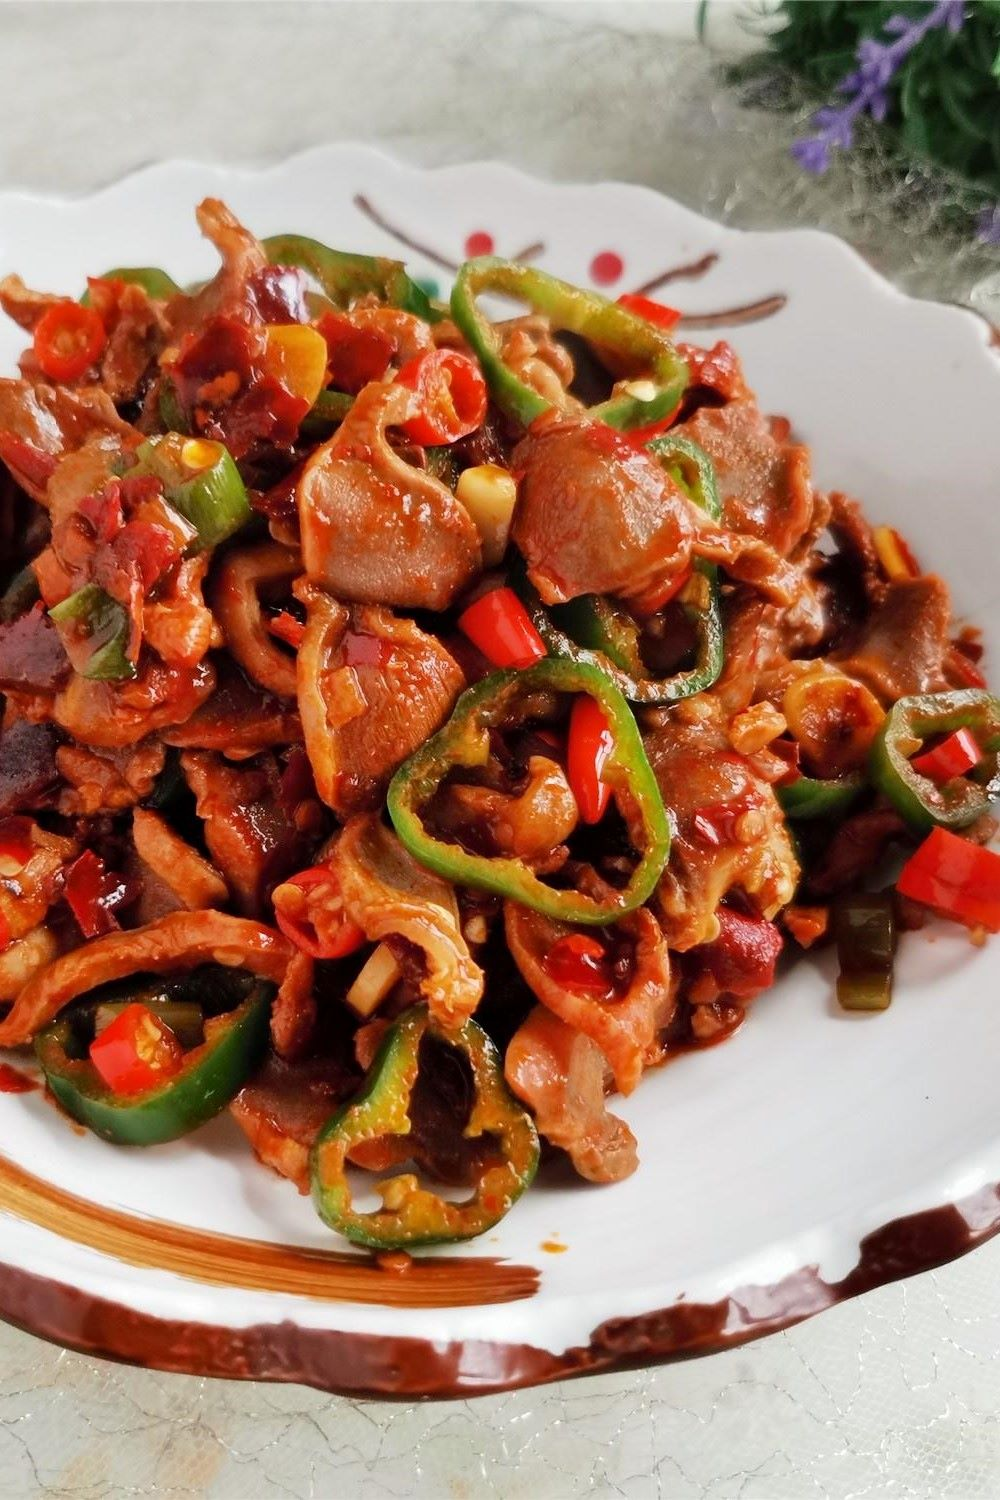 Spicy Chicken Gizzards How to Cook Chicken Gizzards Tender China food Chinese homemade dish recipe